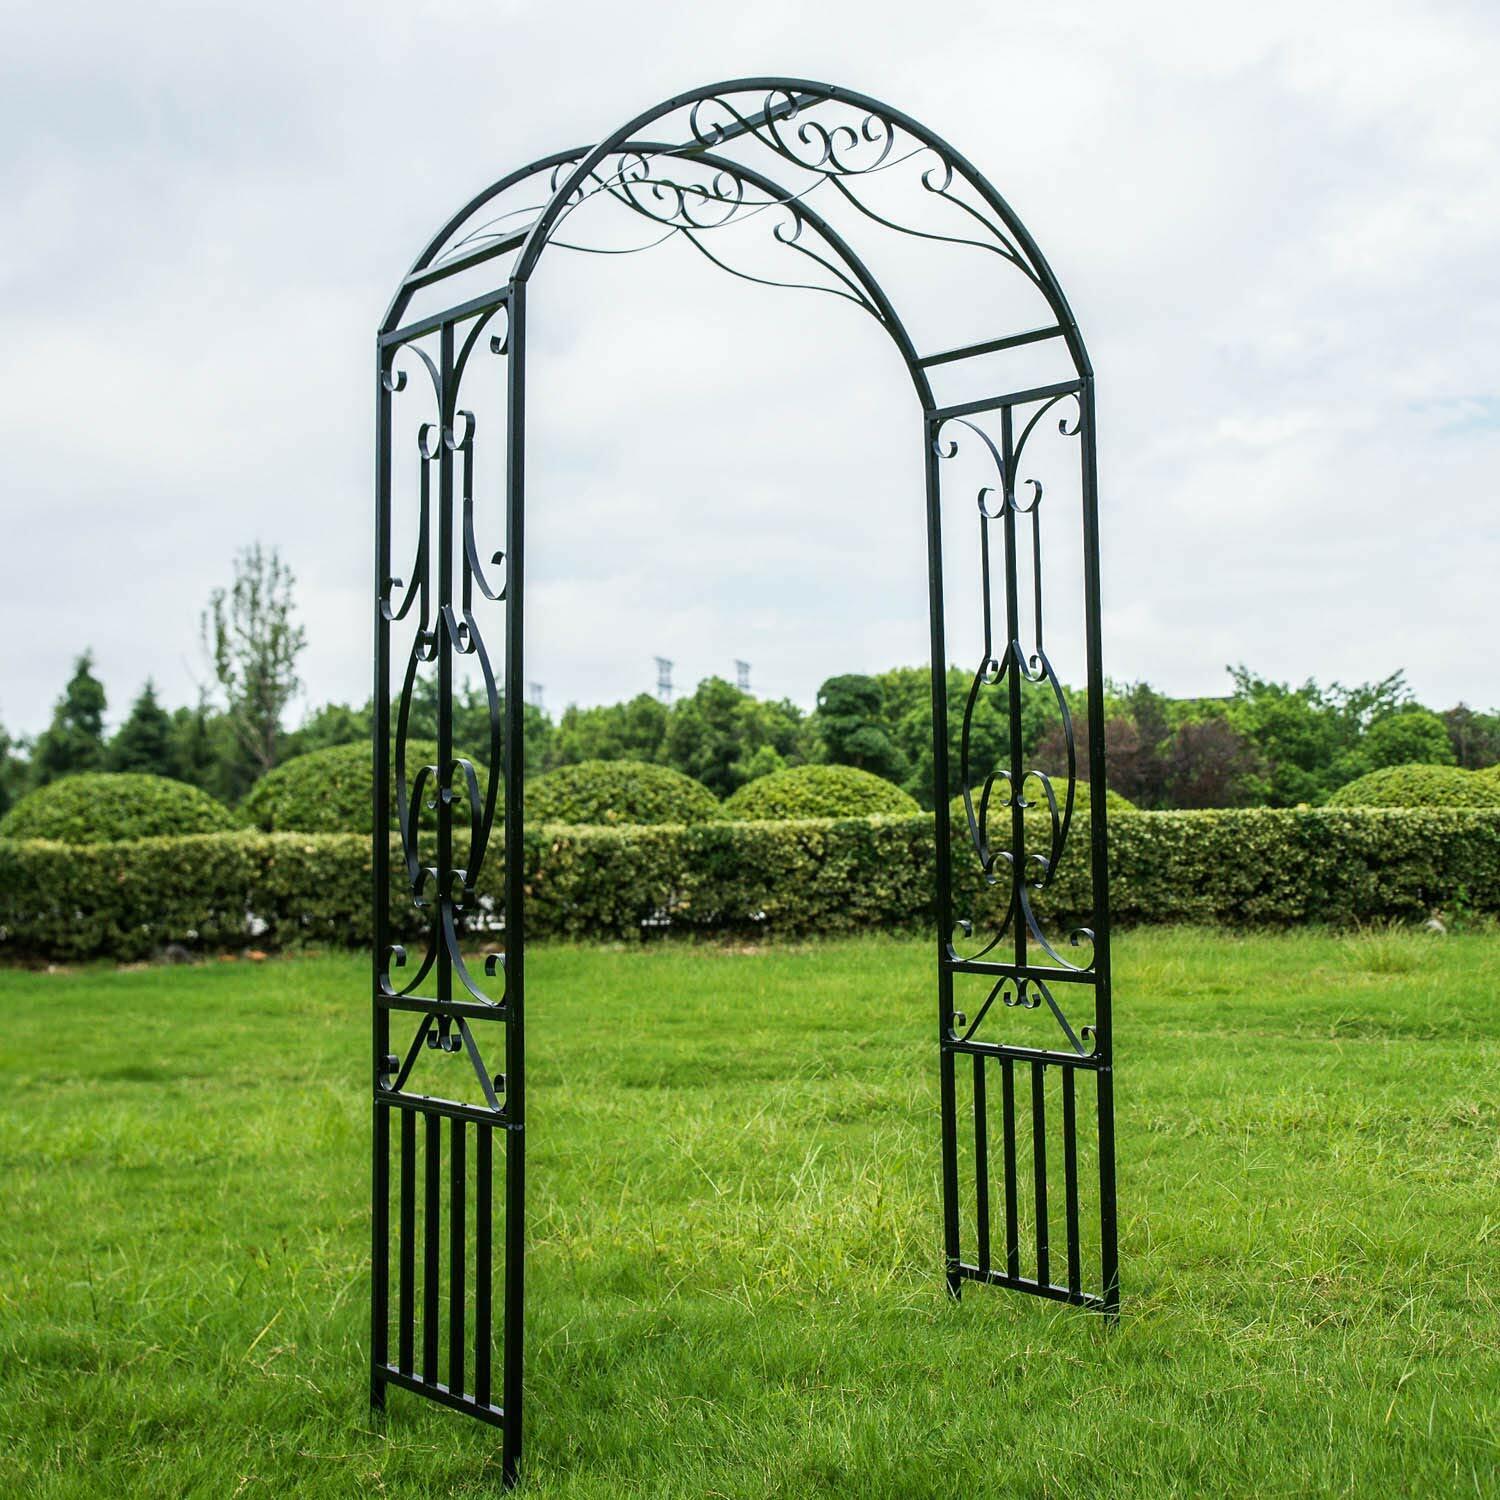 Garden Arch 120 x 60 x 205 cm Natural Solid Wood Wedding Arch Ceremony Bridal Party Decoration Arbor Arch Climbing Plant Support for Lawn Backyard